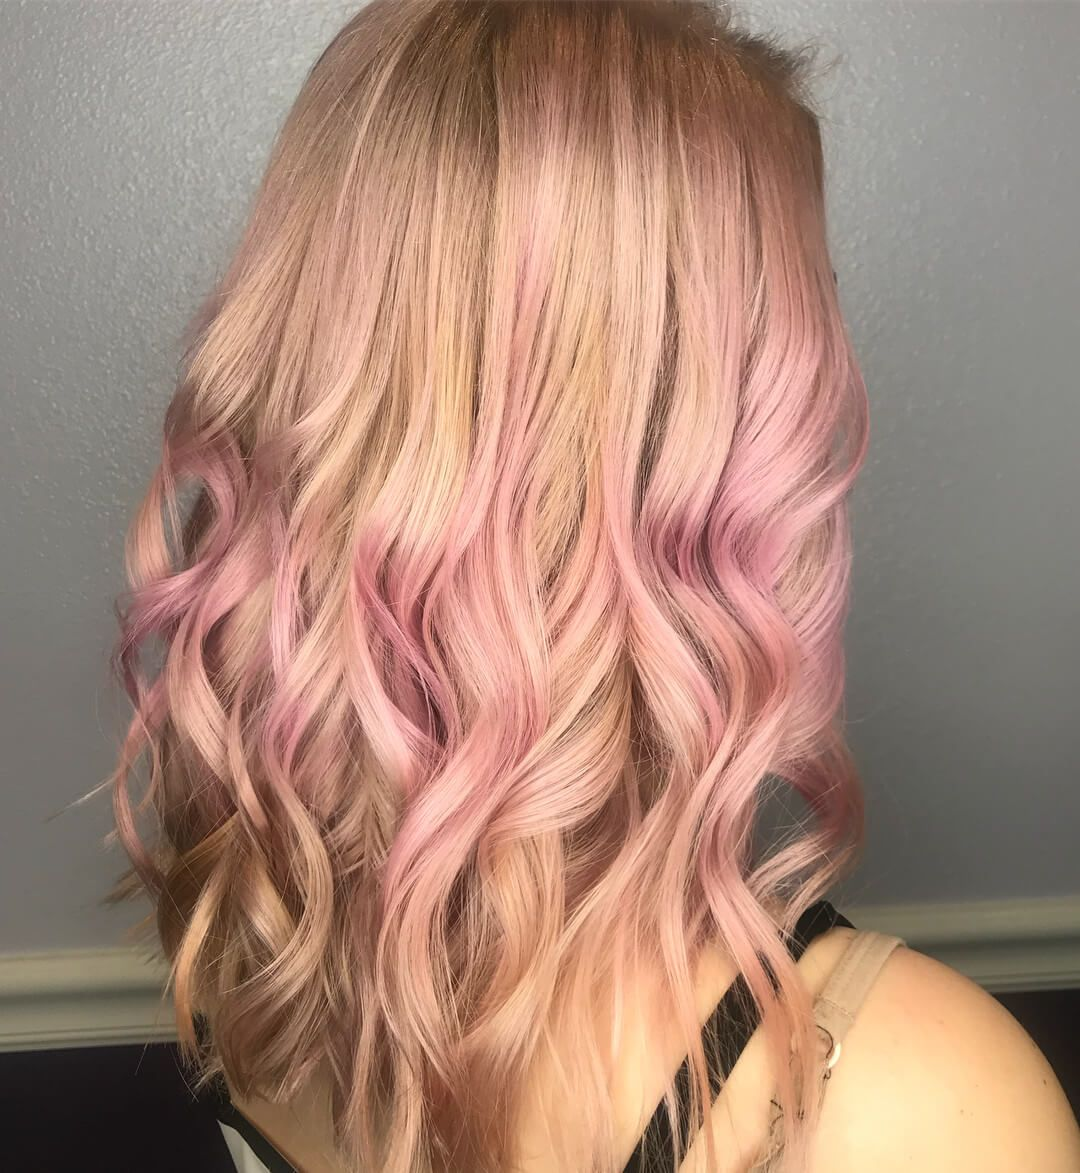 2019 Hair Color Trends For Women To Try Fashionterest Light Blonde Hair Hair Color Trends Pink Hair Highlights